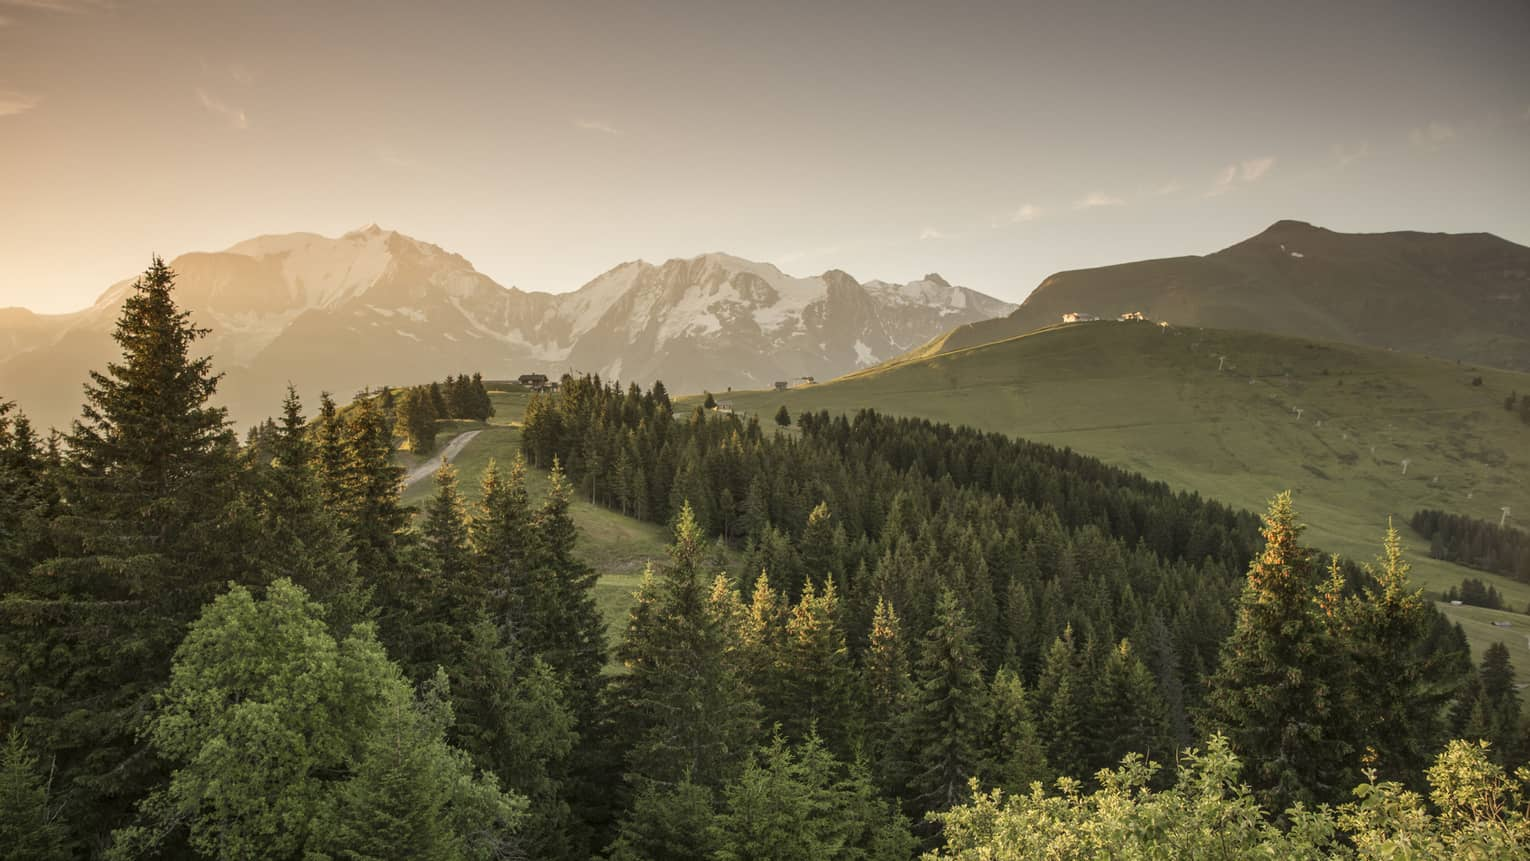 Sun sets over snow-capped mountains, green forests, trails in French Alps